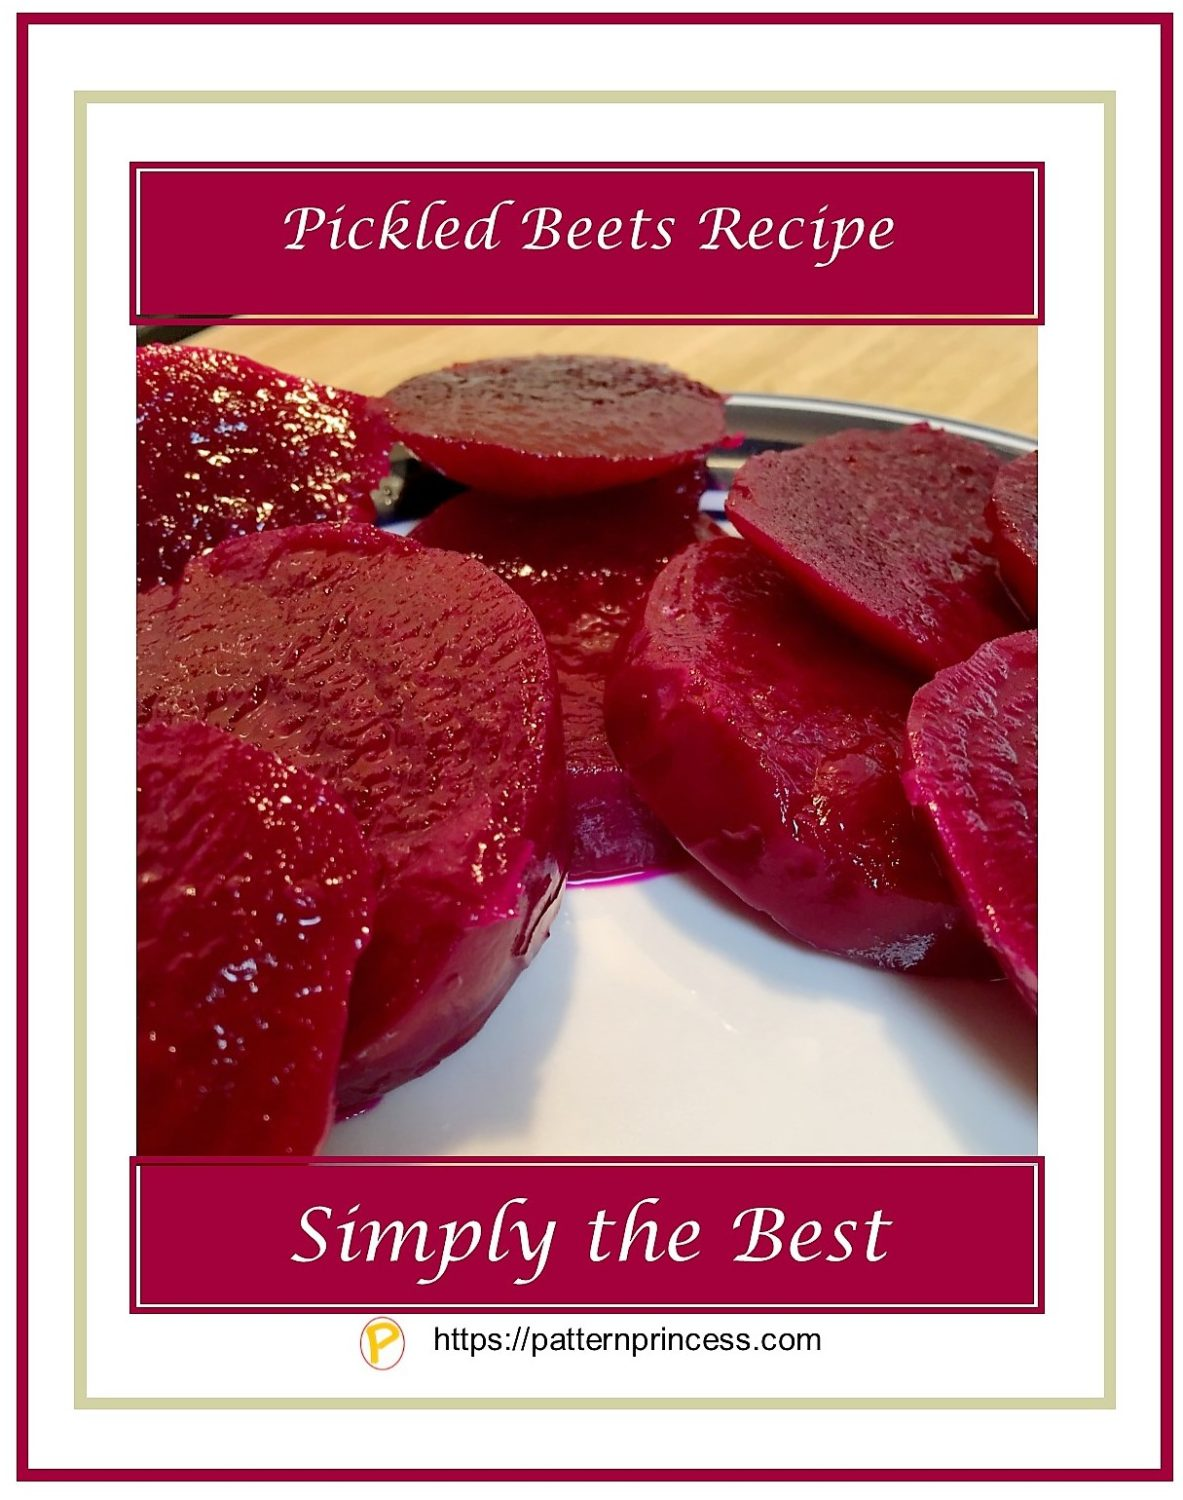 Pickled Beets Recipe 1